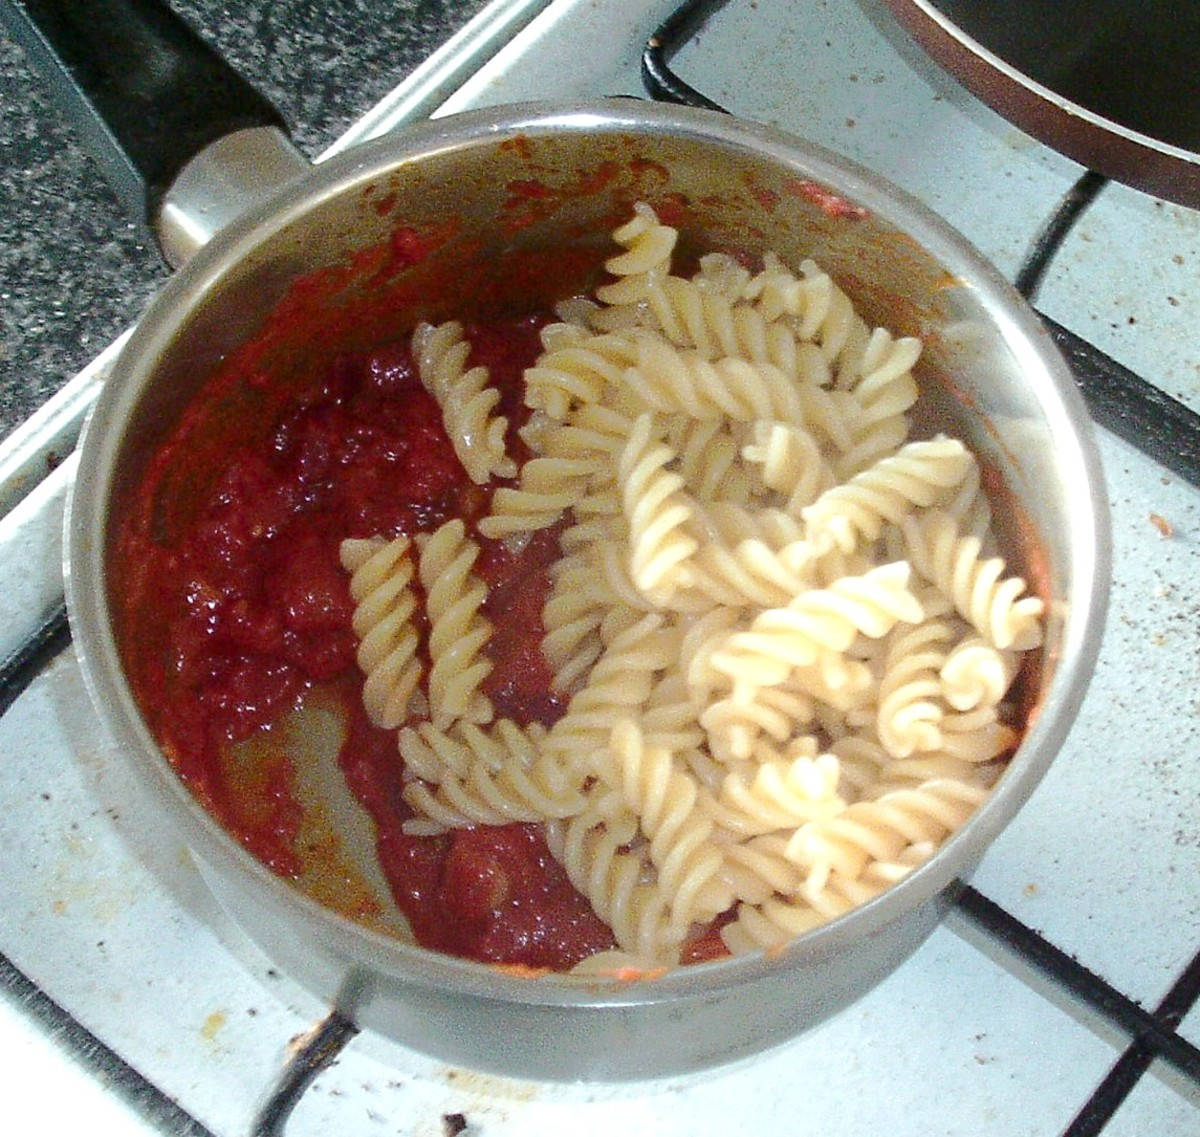 Fusilli pasta is added to tomato sauce